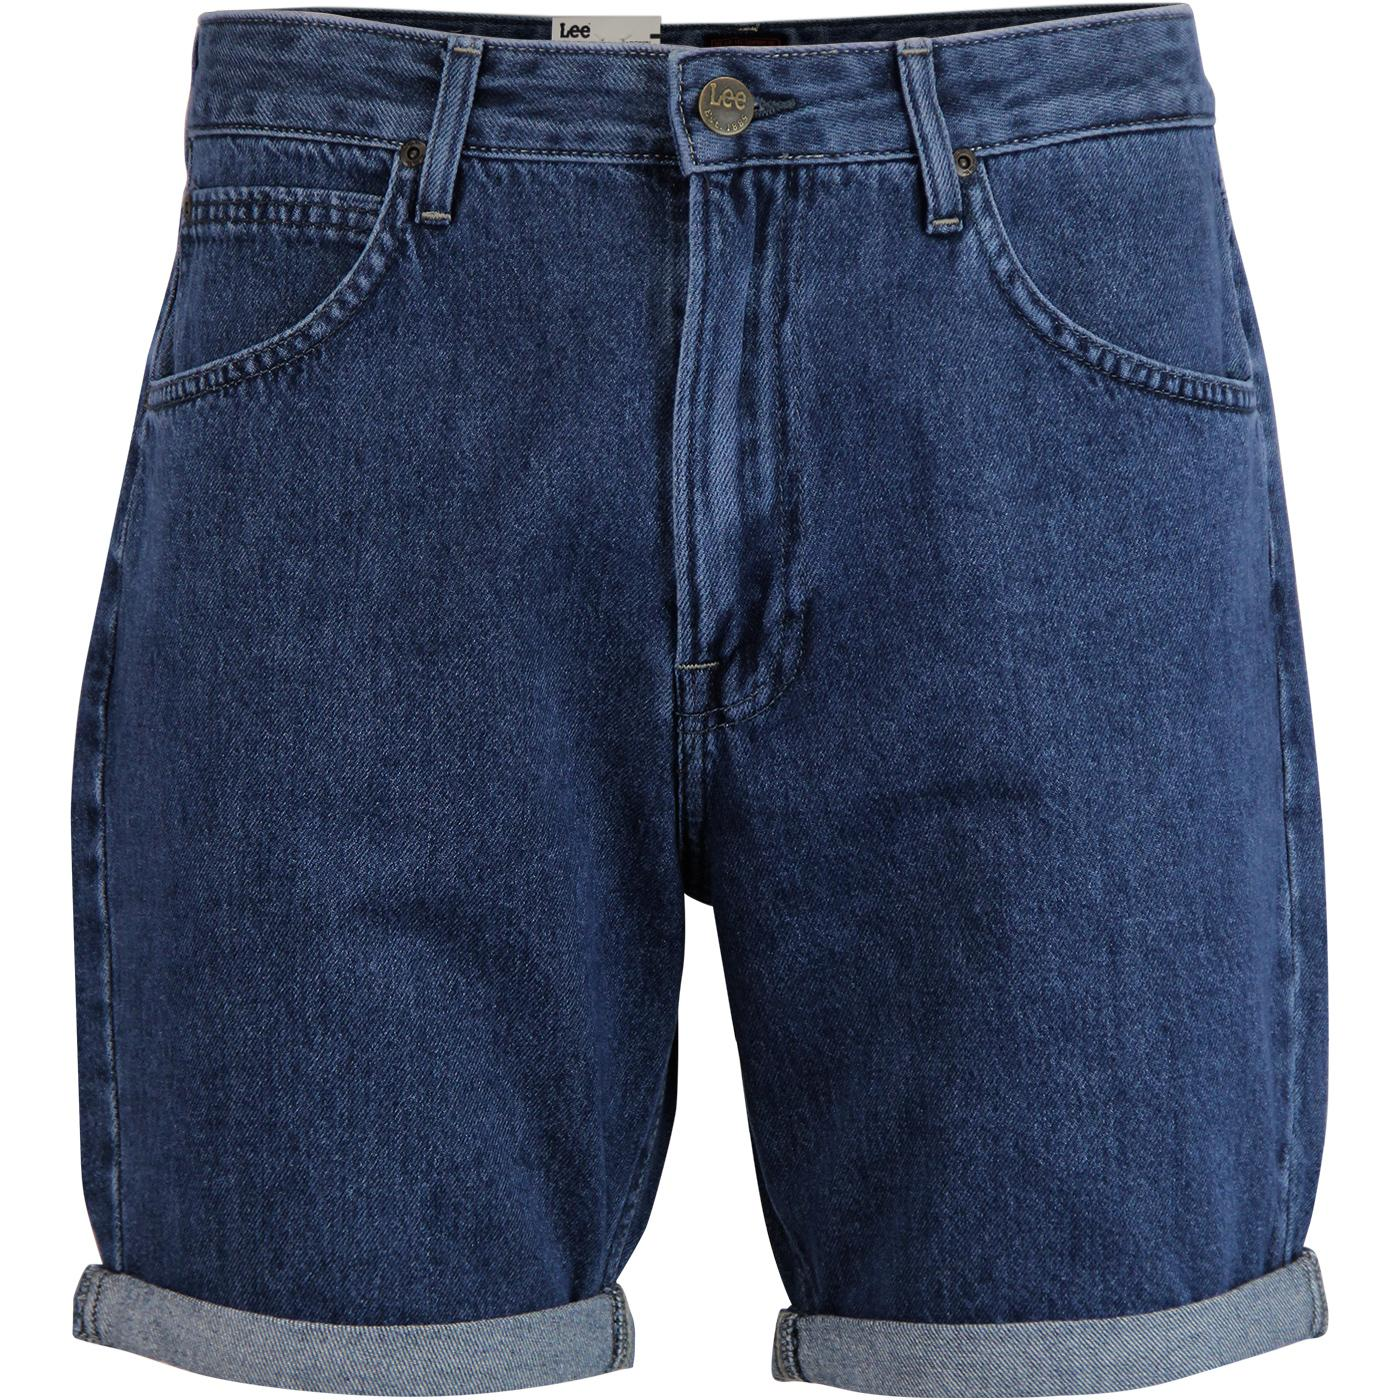 Pipes LEE JEANS Retro Tapered Denim Short TIC